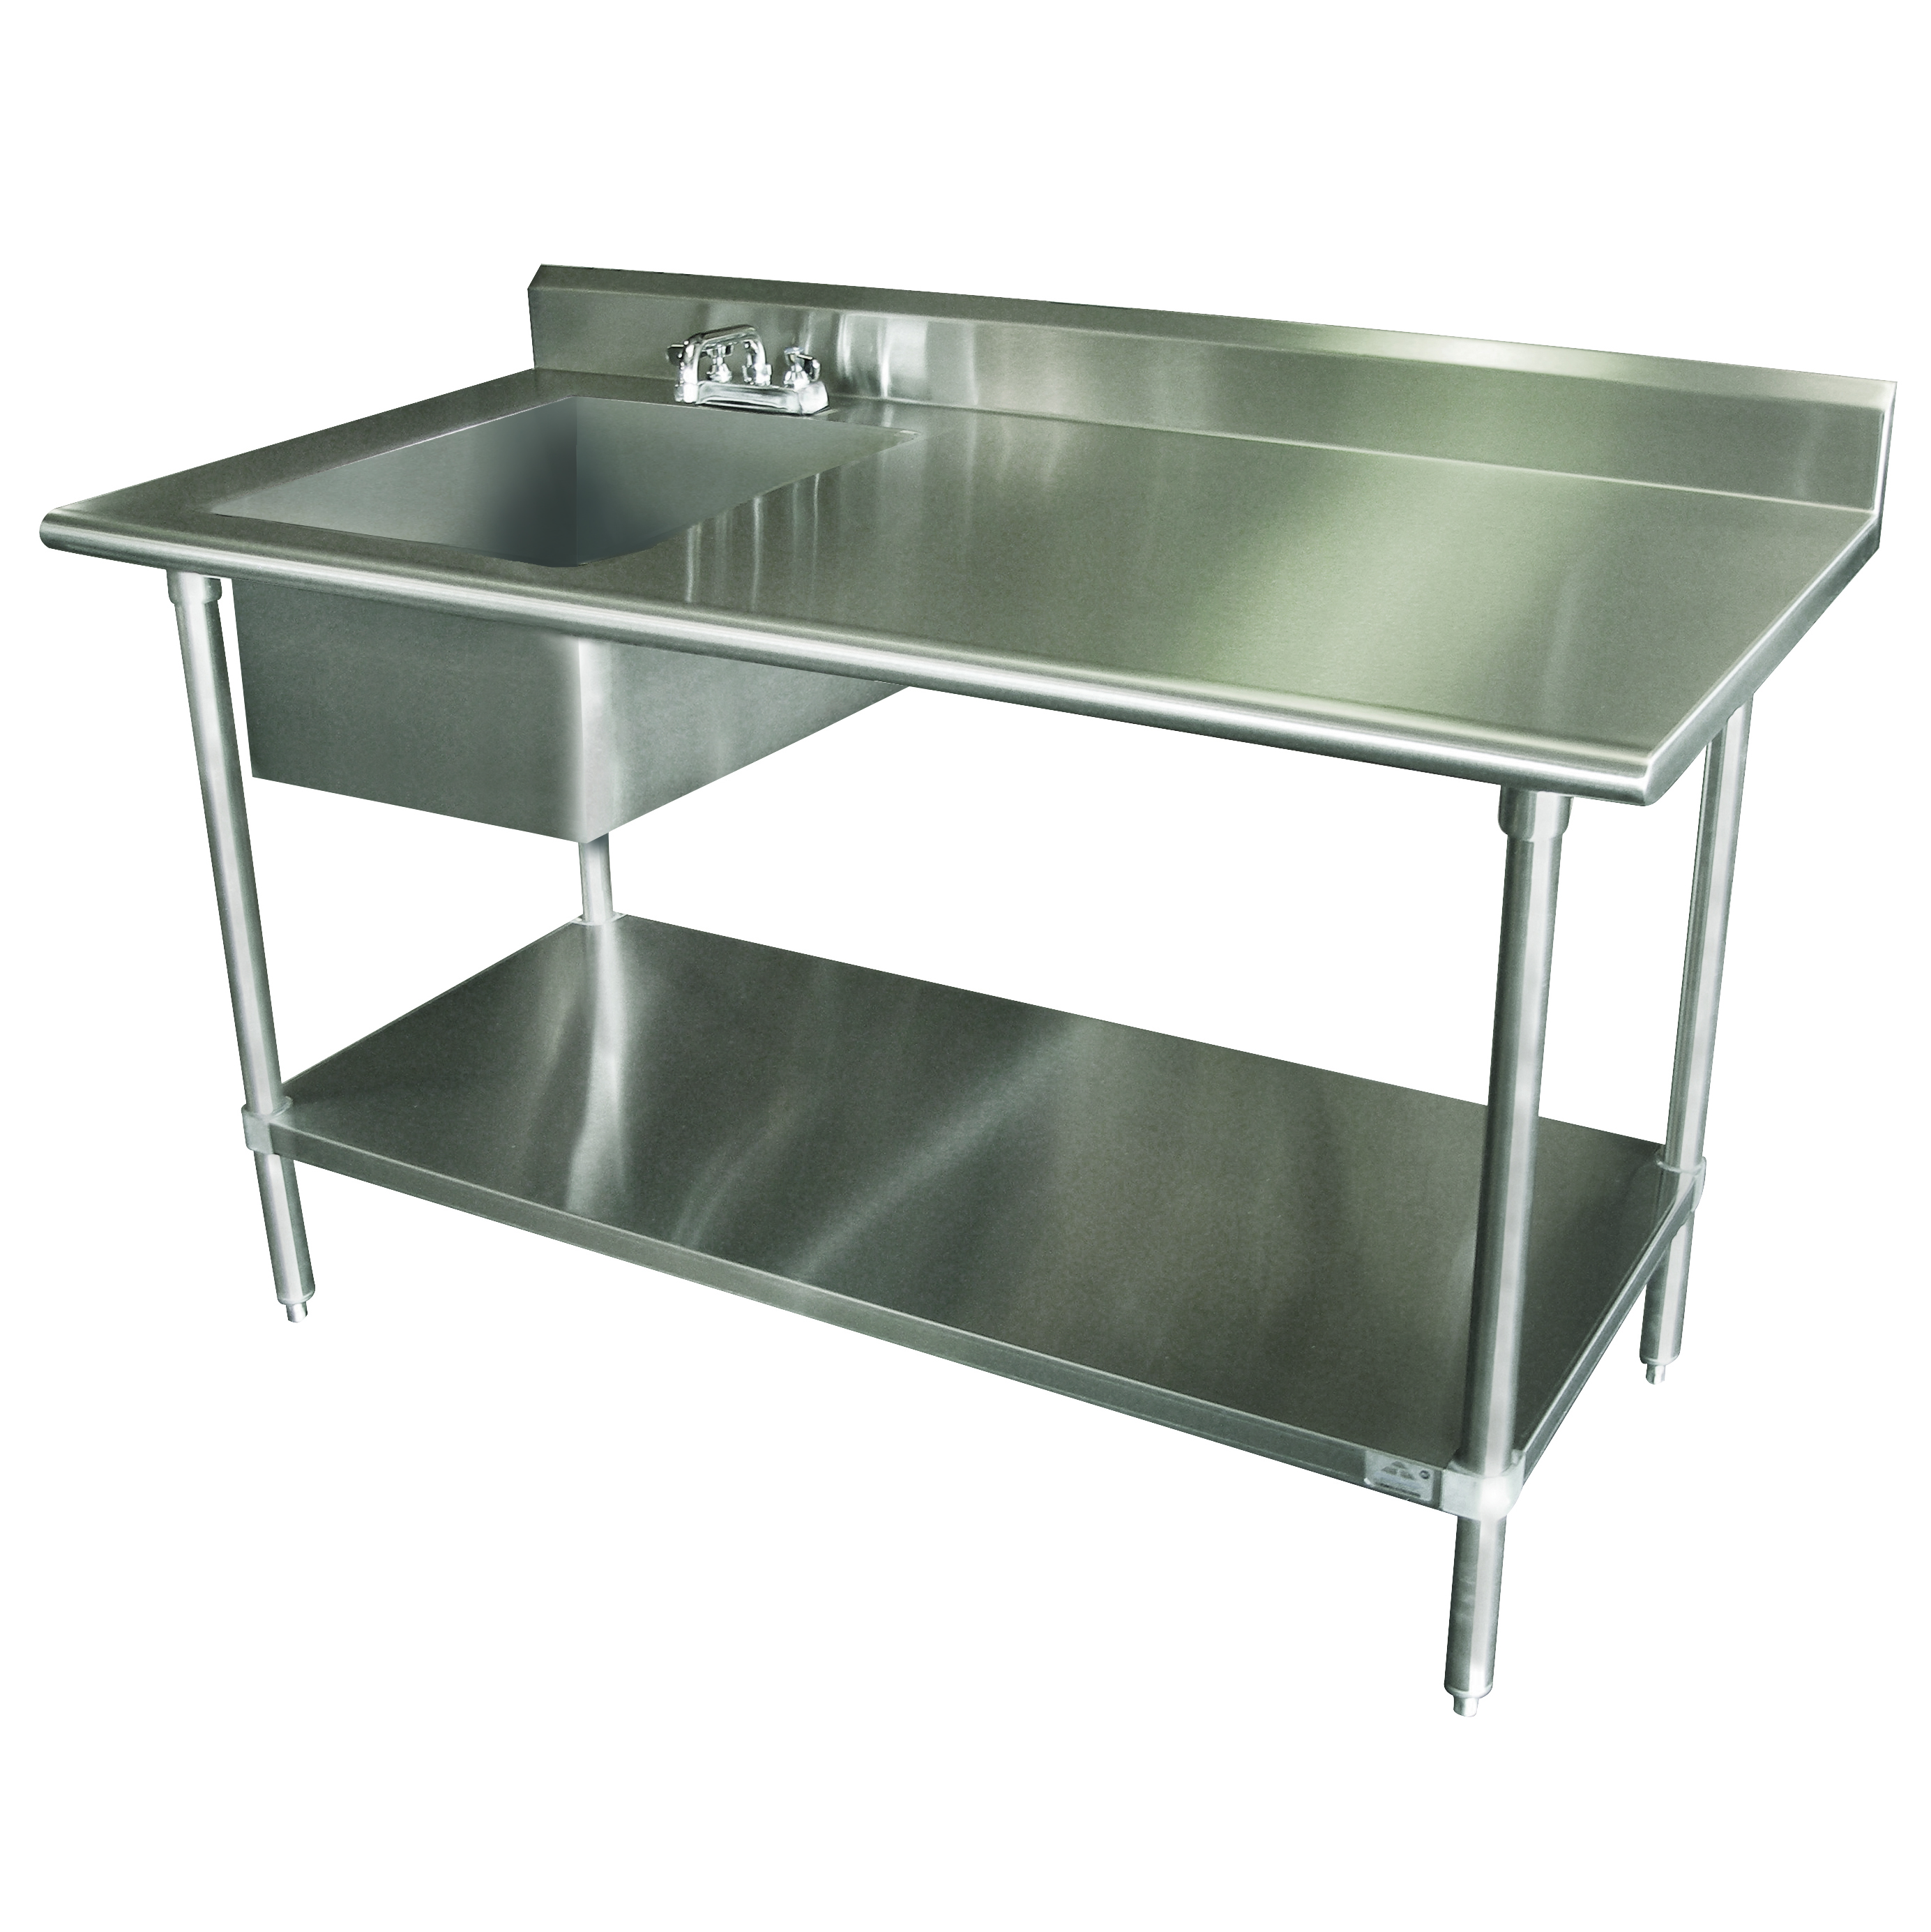 Advance Tabco KLAG-11B-306L-X work table, with prep sink(s)